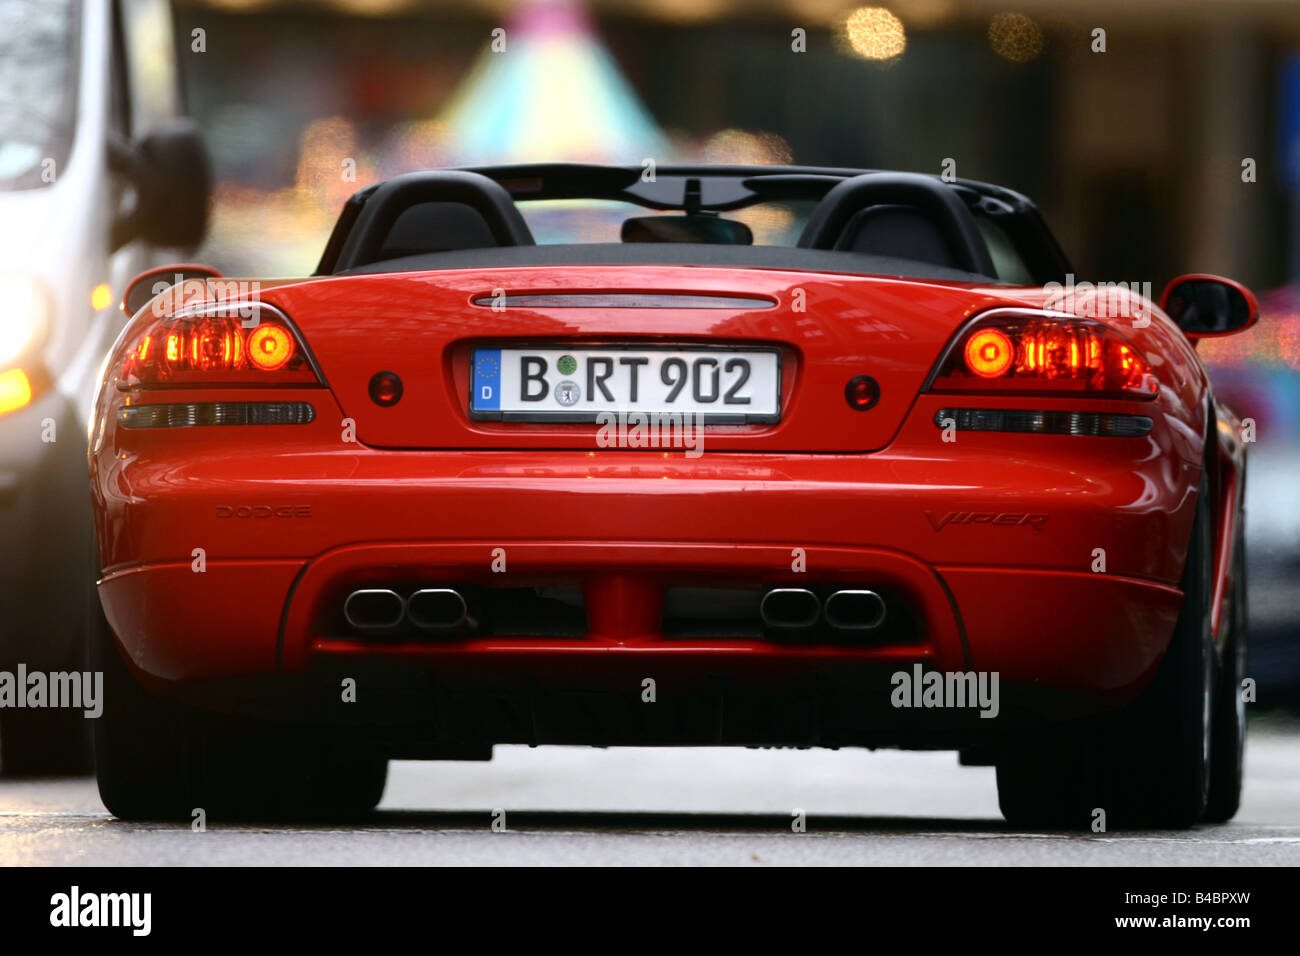 Car Dodge Viper Srt 10 Convertible Model Year 2003 Red Fghds Stock Photo Alamy